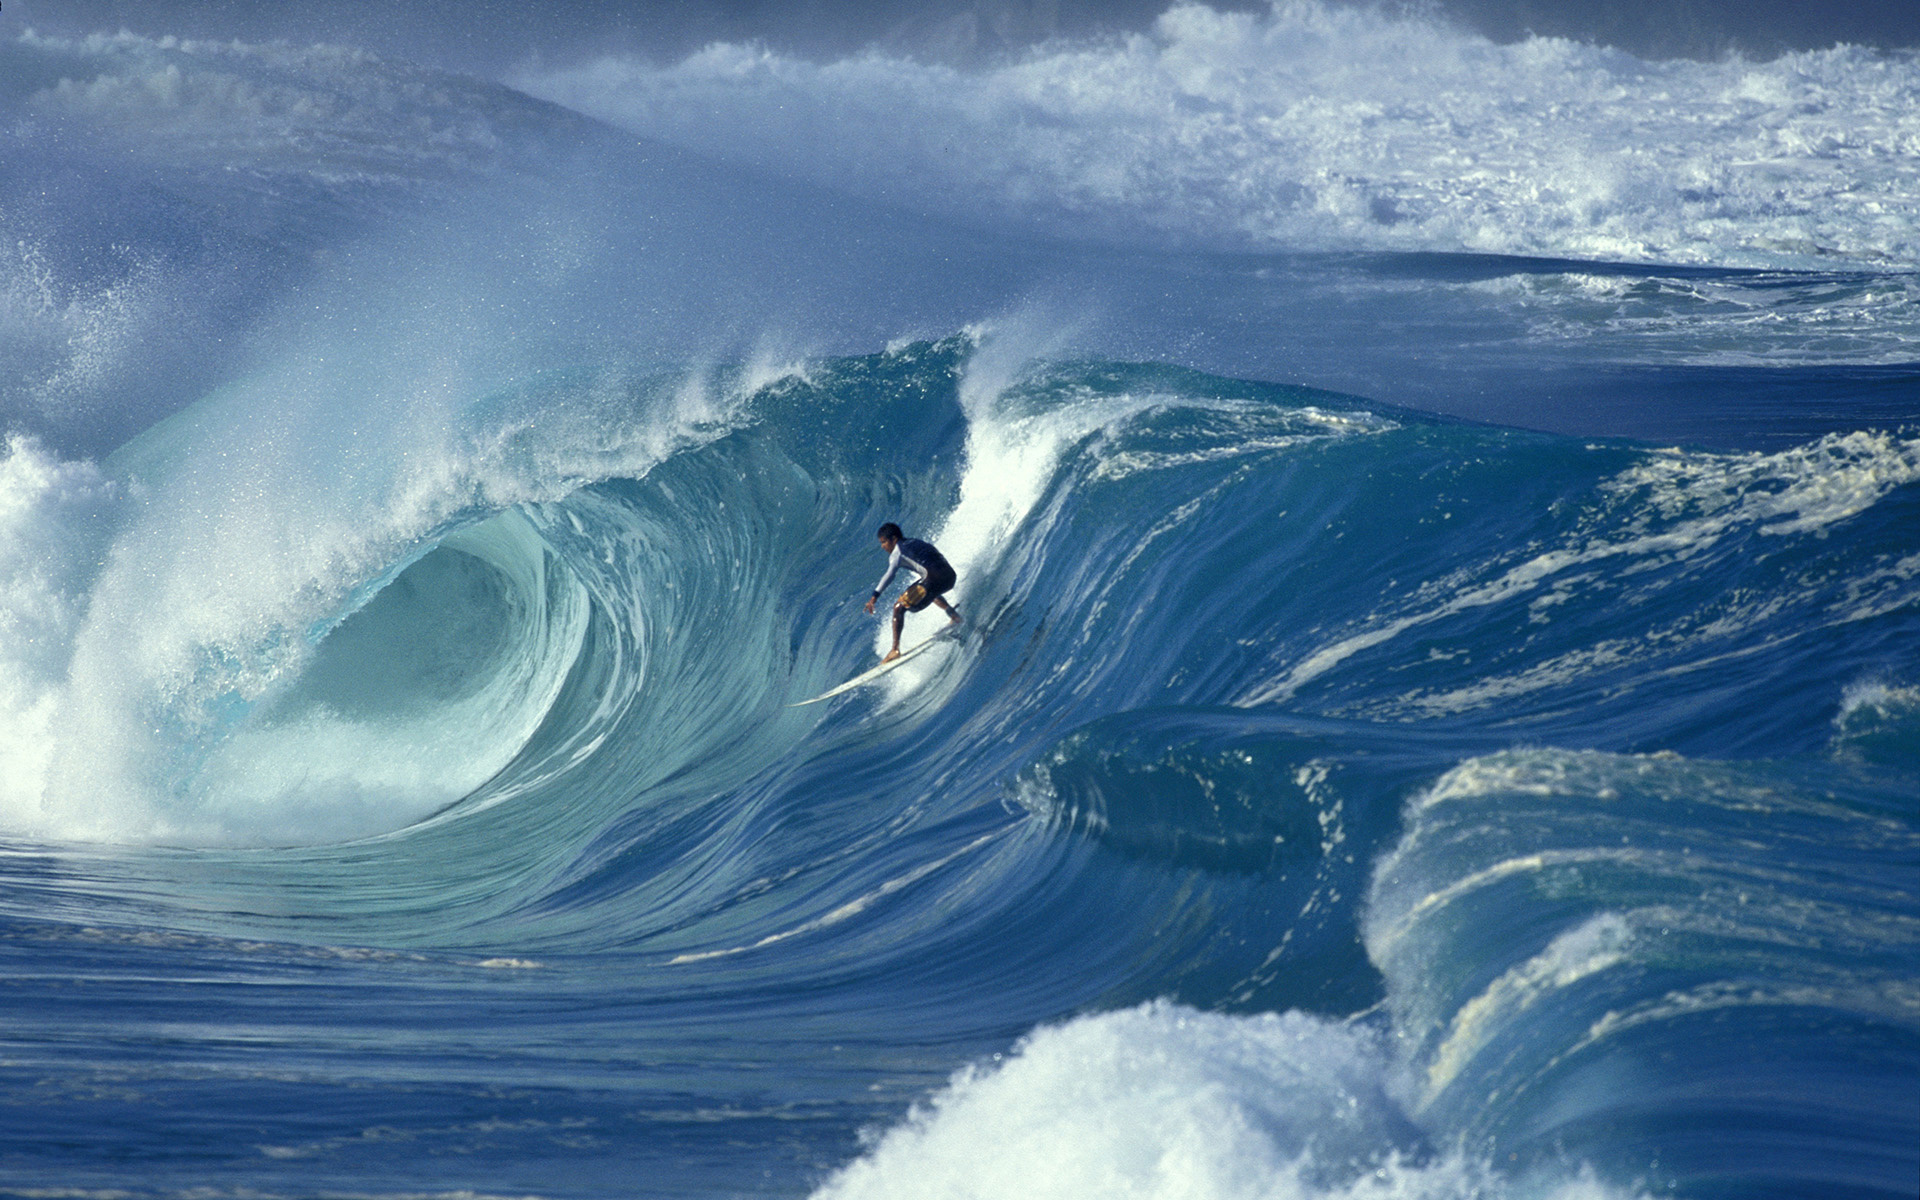 Big Wave Surfing Screensavers PC Android iPhone and iPad Wallpapers 1920x1200